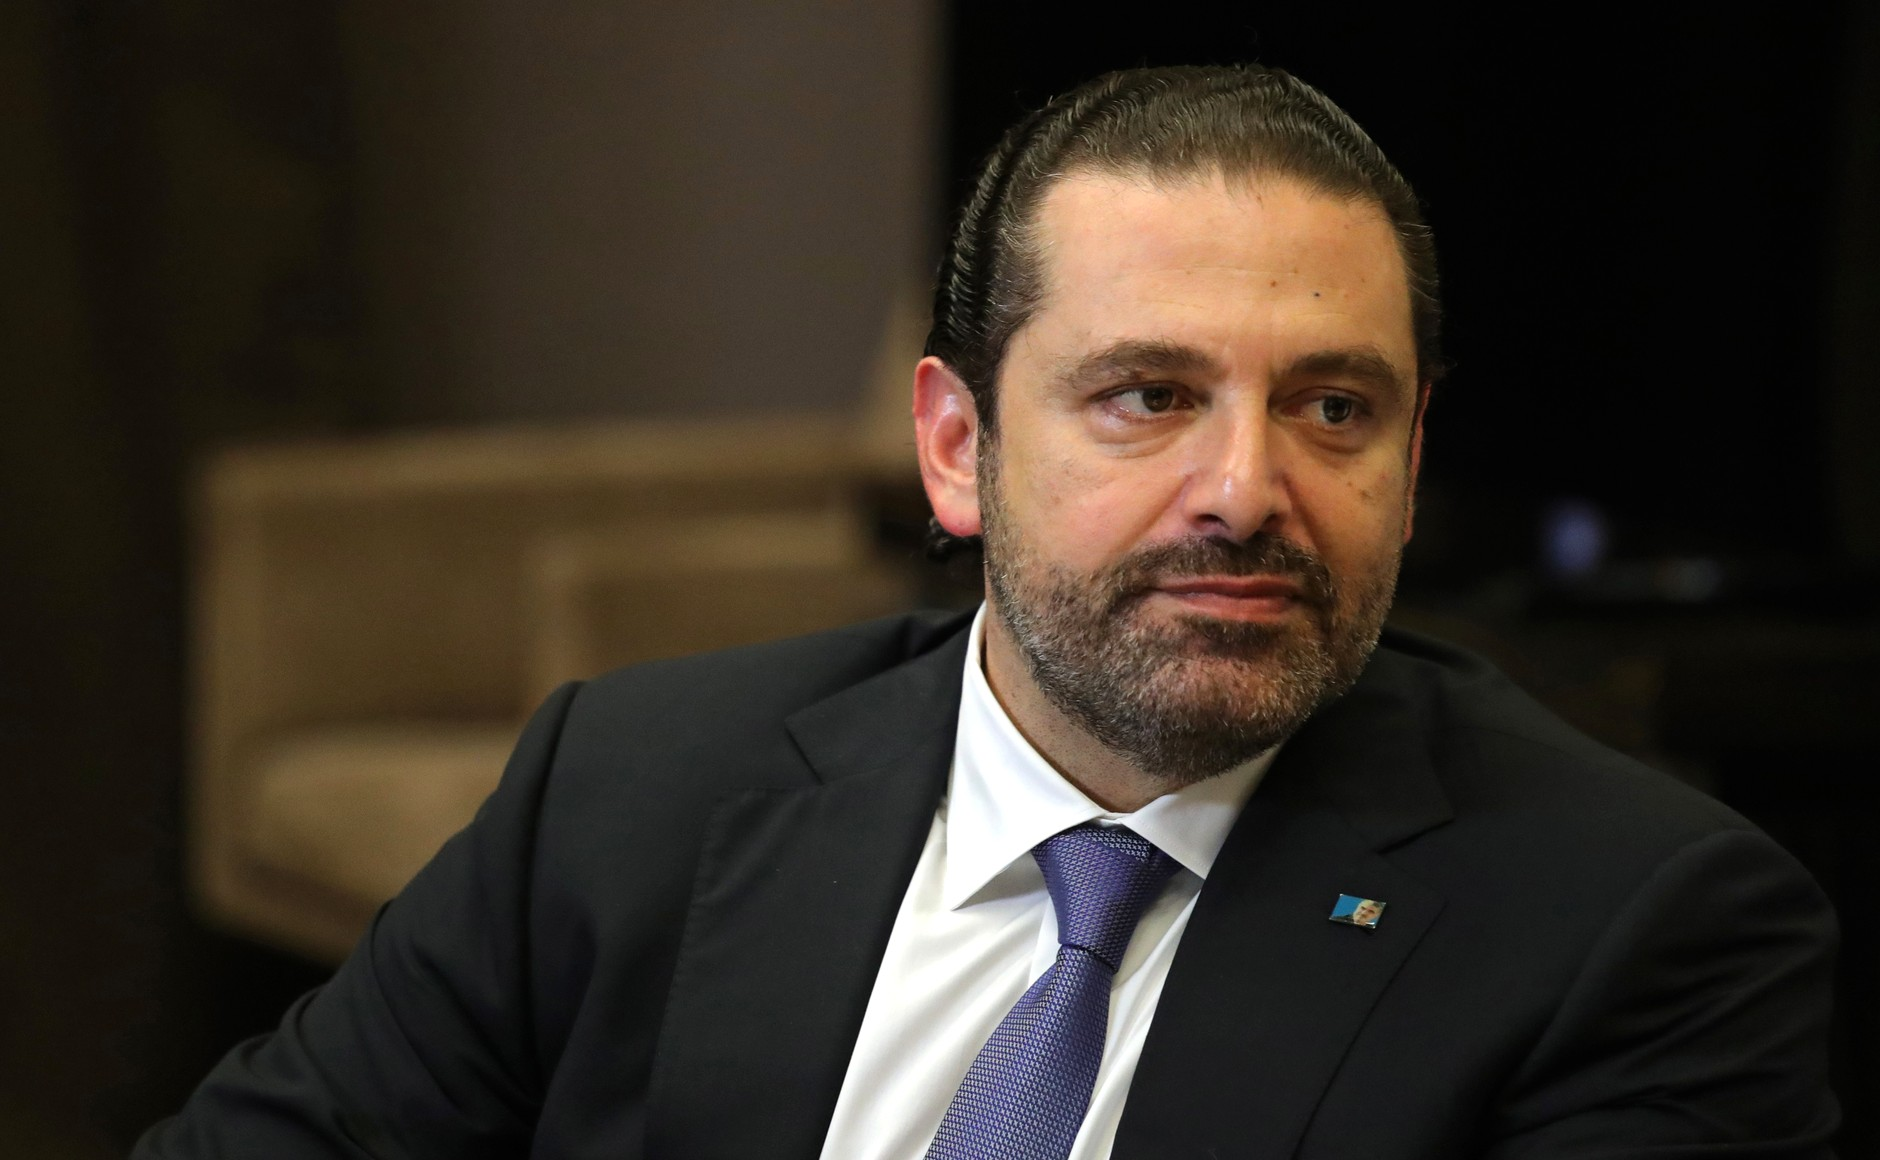 Prime Minister Saad Hariri will head the new government after eight months of negotiations. (Wikimedia Commons)